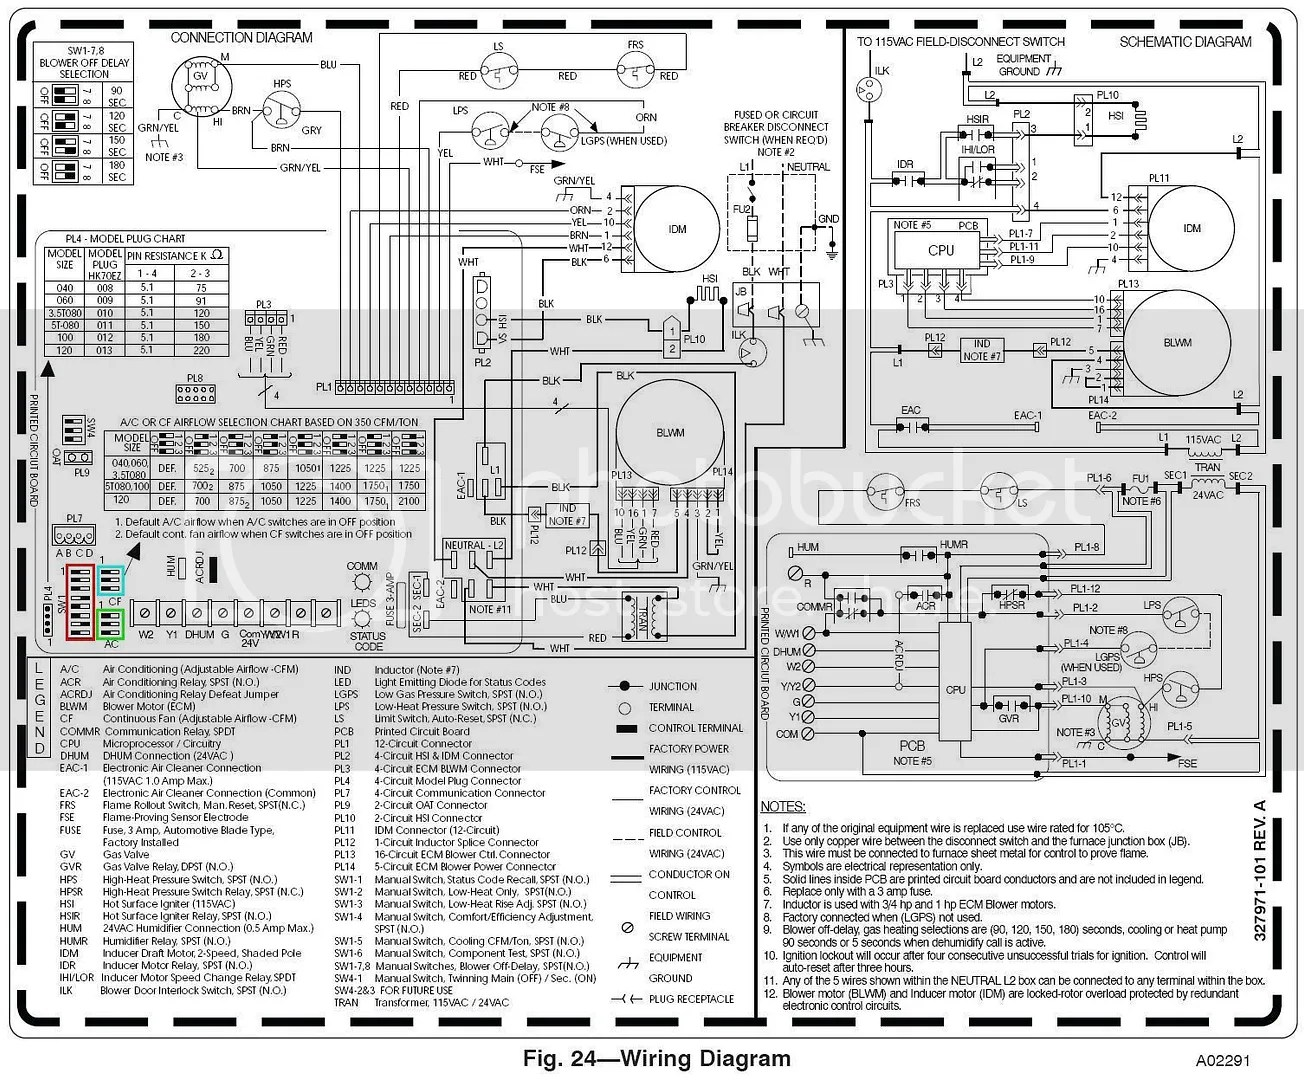 carrier wiring diagram air handler walk in freezer ecm blower motor issue doityourself